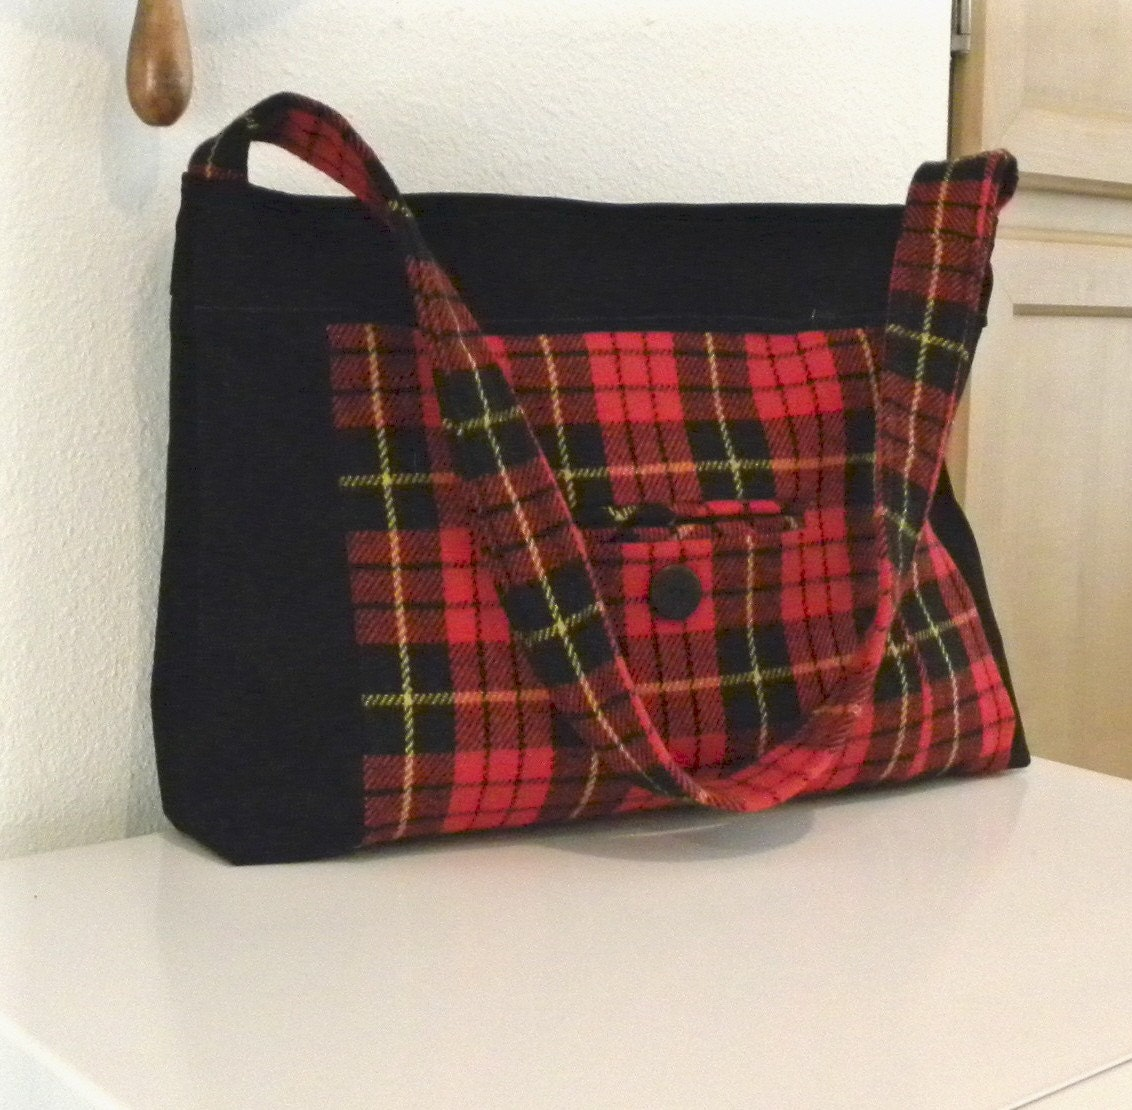 Handmade from a Black Leather Jacket and Scottish Red Plaid Jacket - Handbag - Tote Bag - Purse